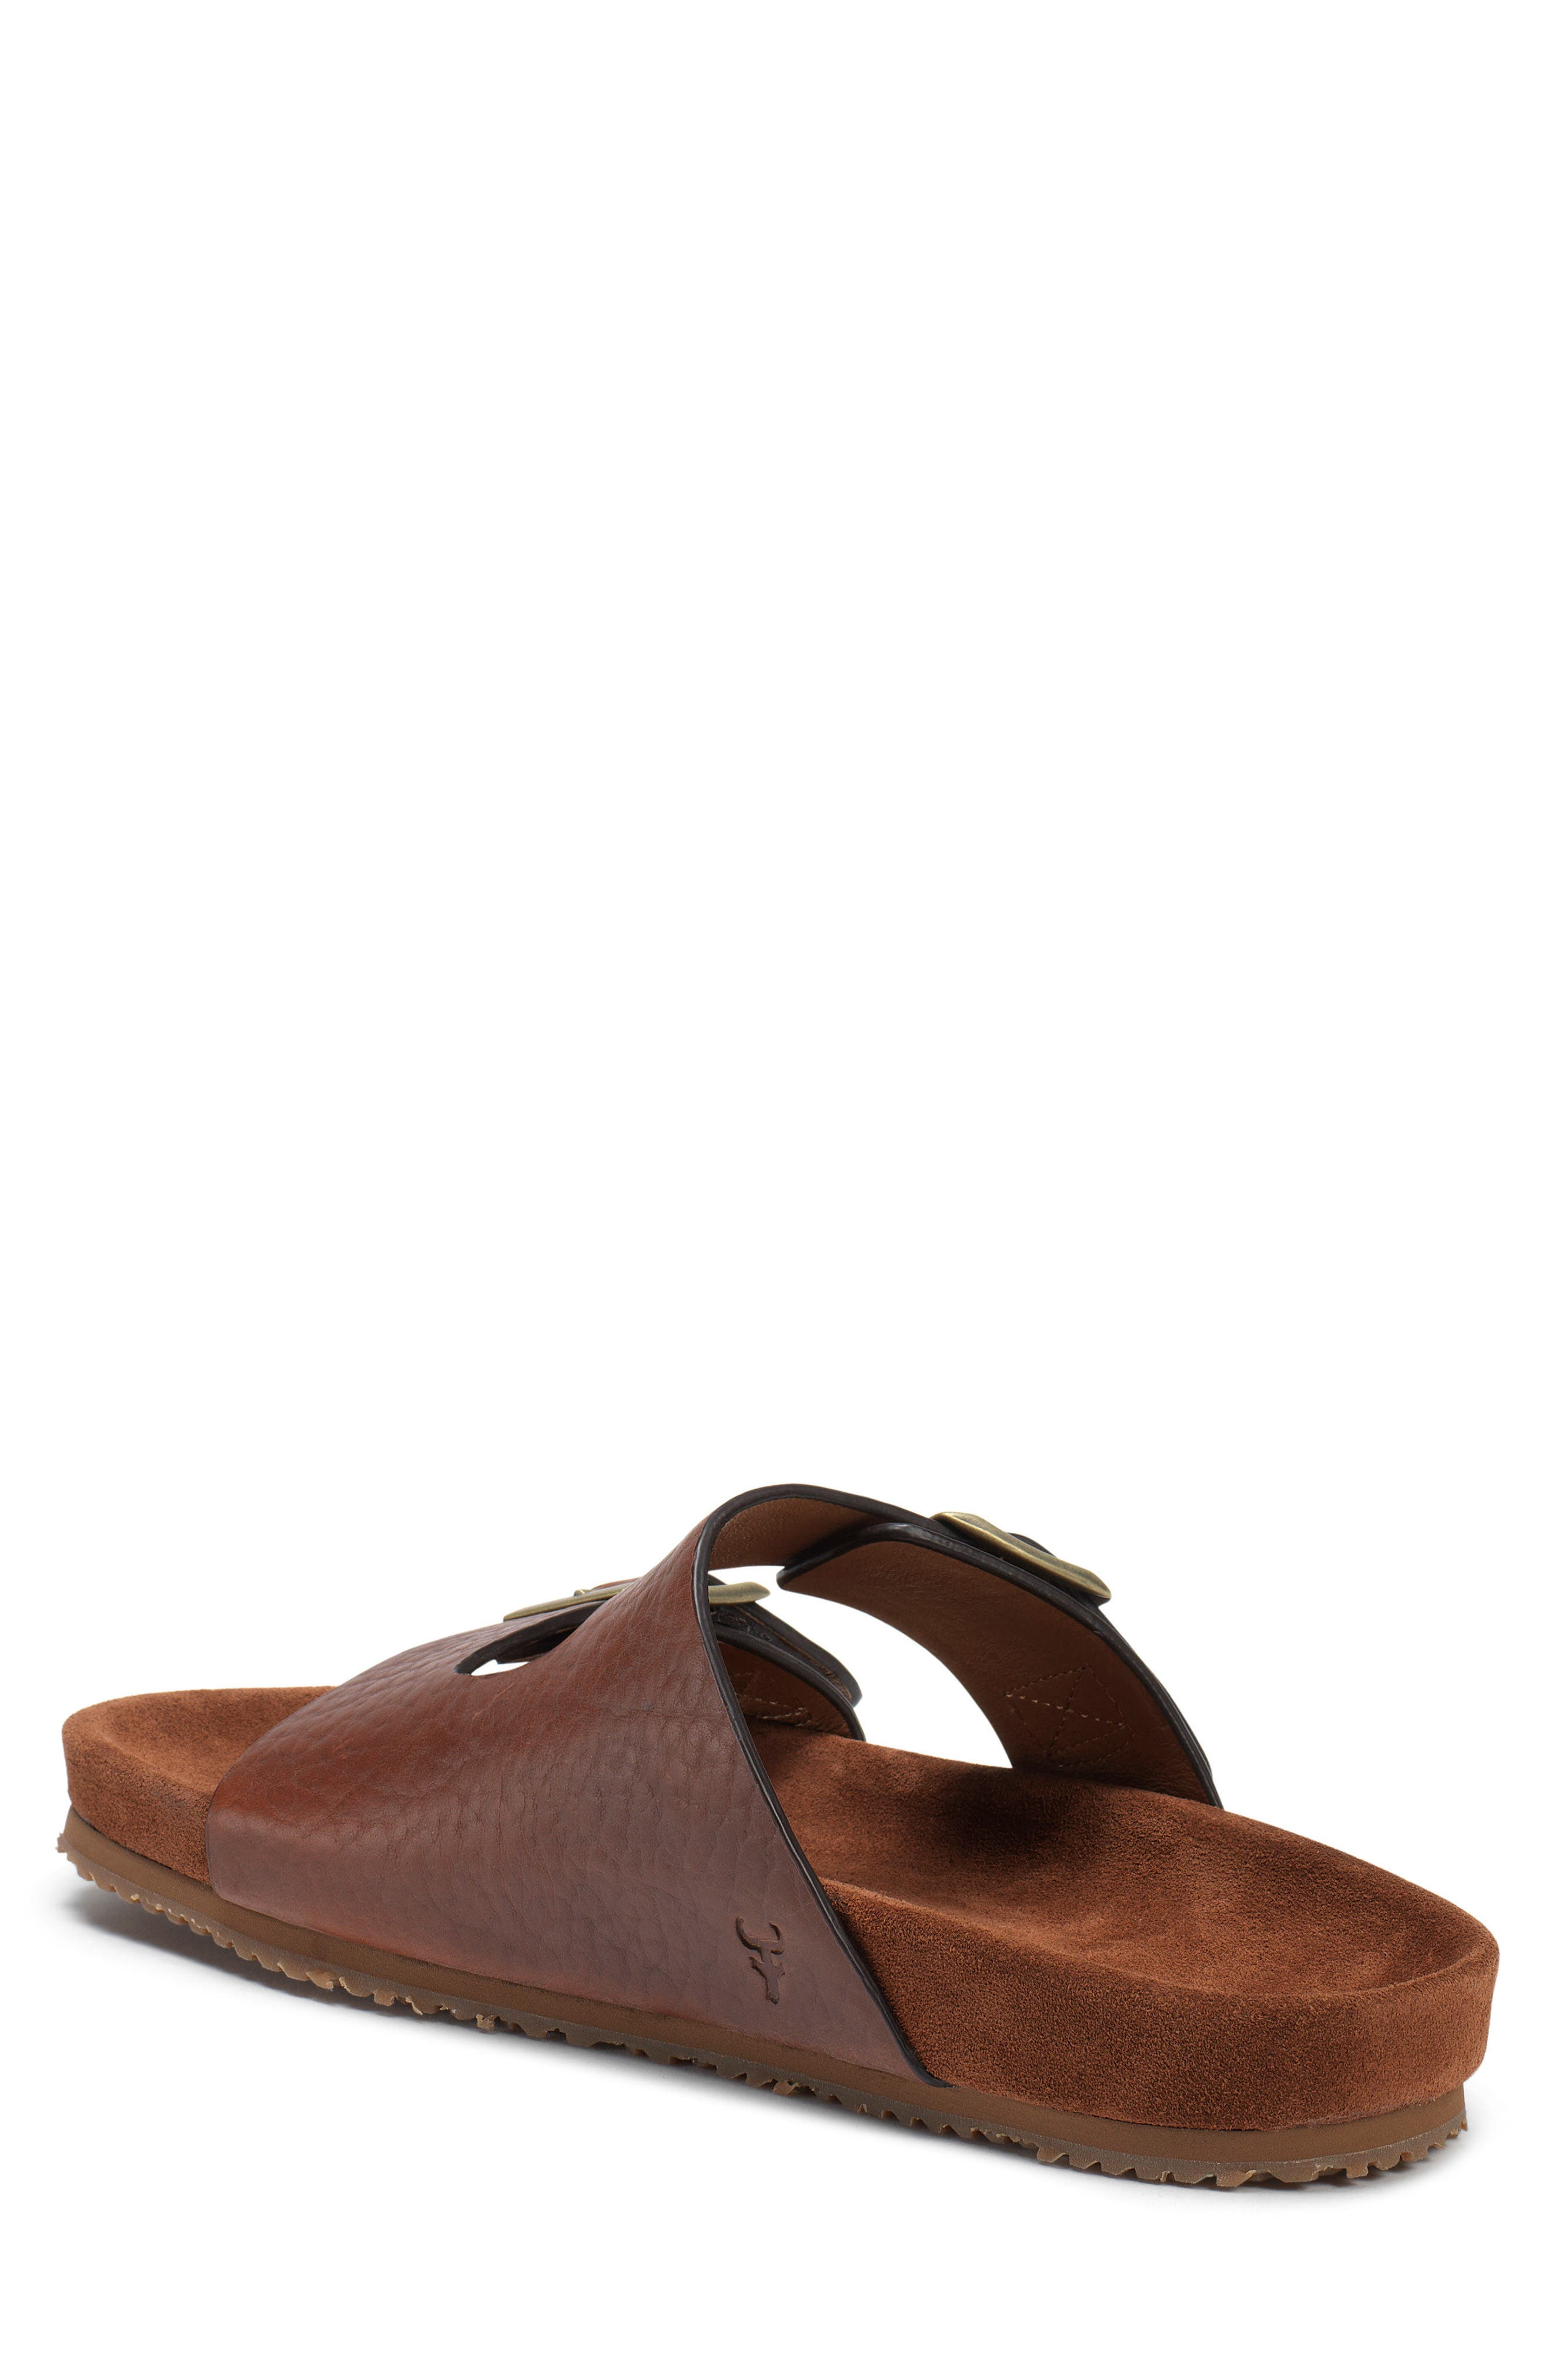 Findley Slide Sandal,                             Alternate thumbnail 2, color,                             235